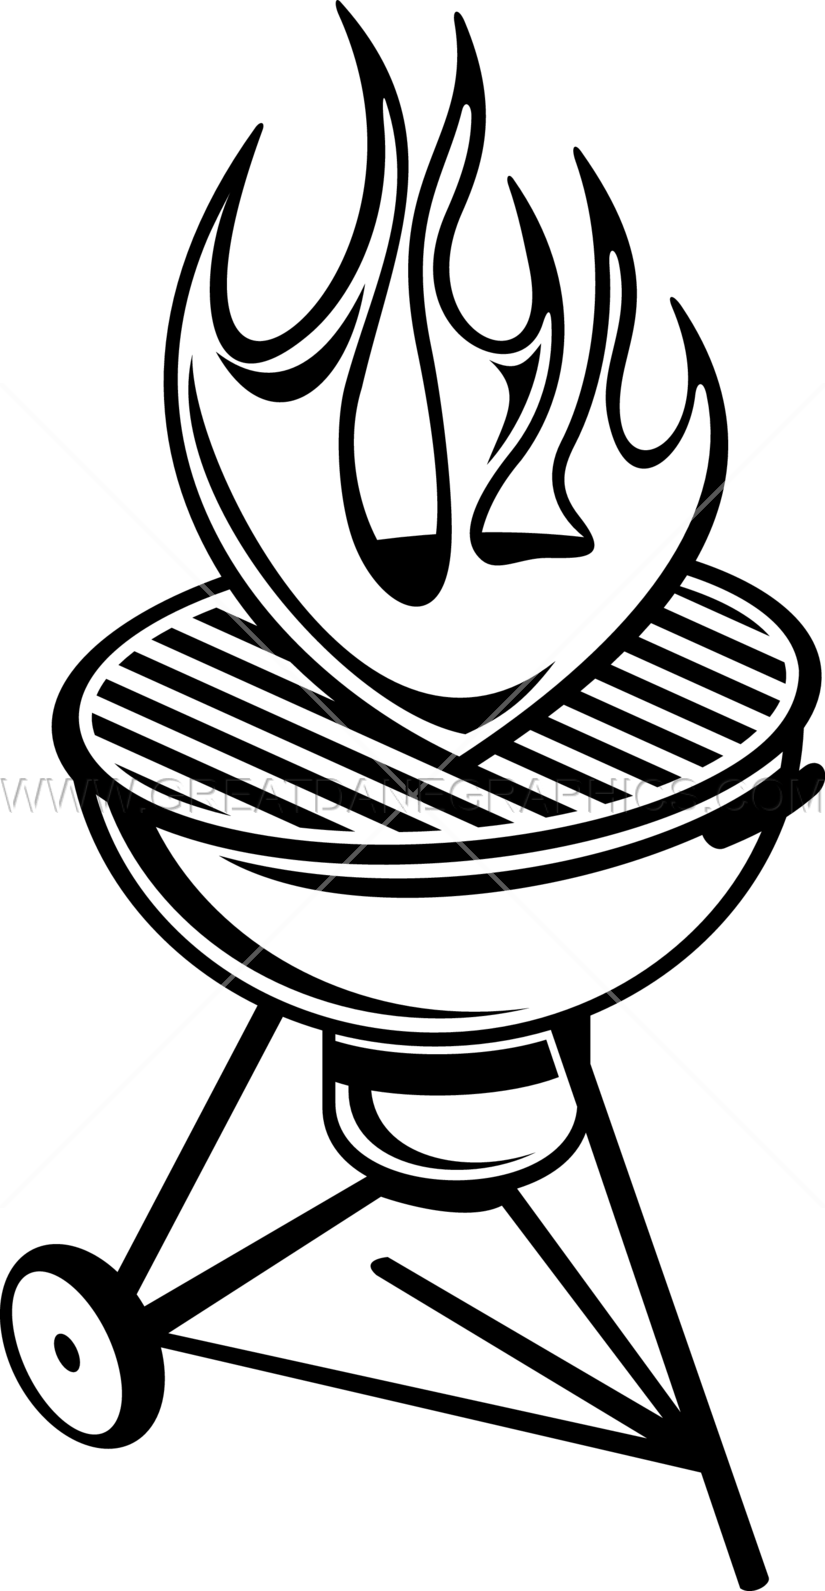 jpg royalty free stock Barbecue drawing at getdrawings. Grill clipart black and white